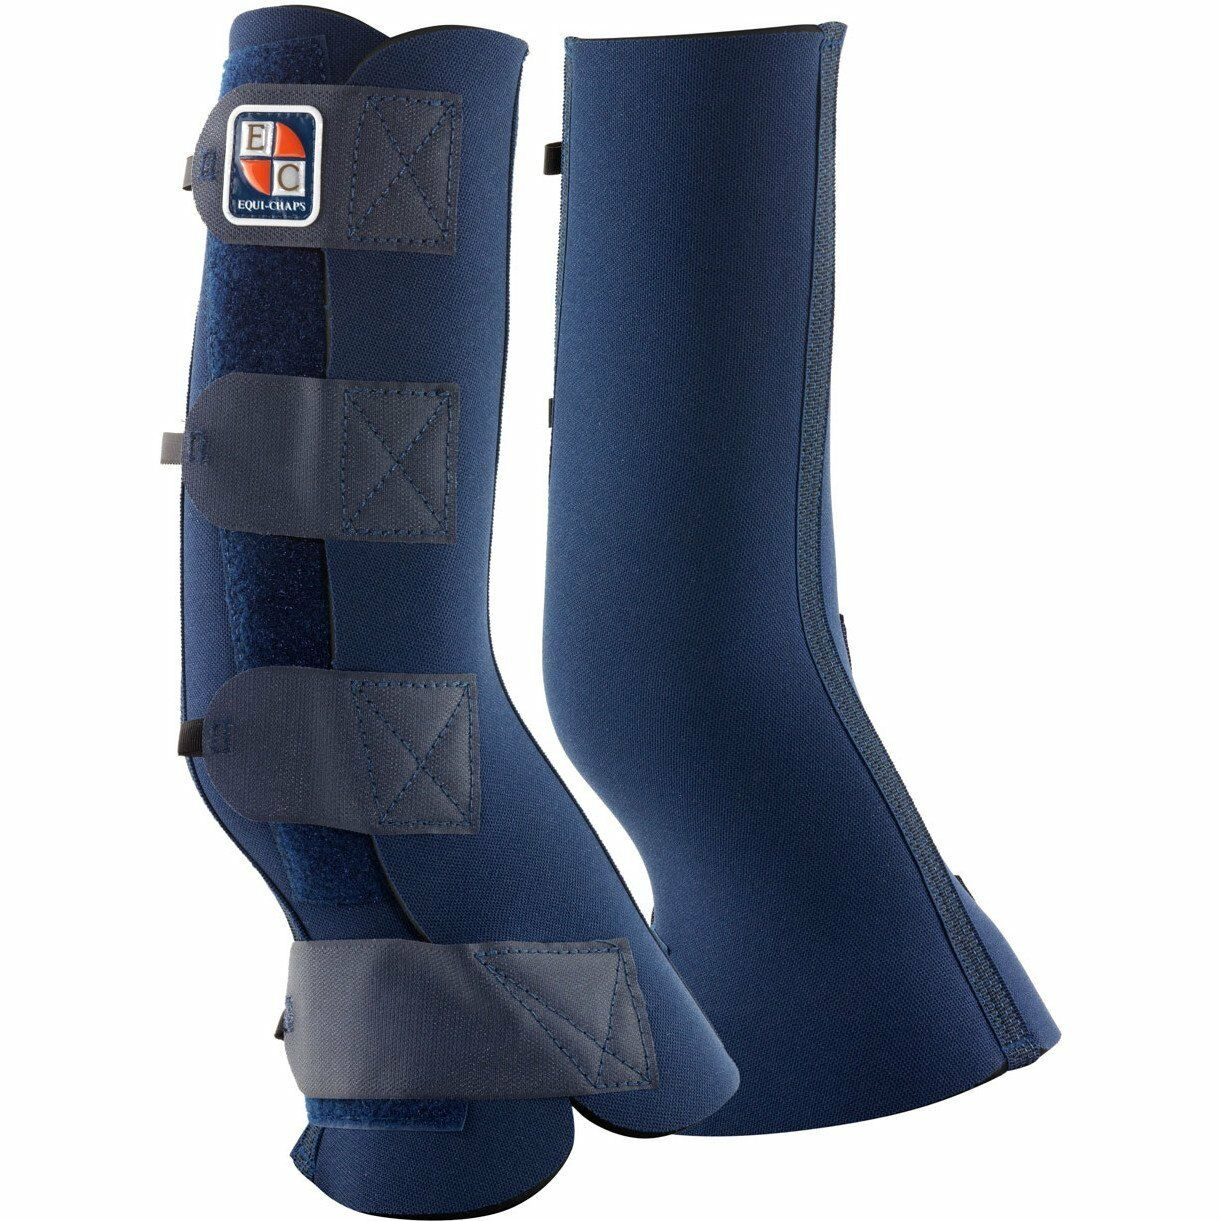 Equilibrium Equi-Chaps Hardy Chaps,Extra Small,Navy,Tough & Durable Turnout Boot